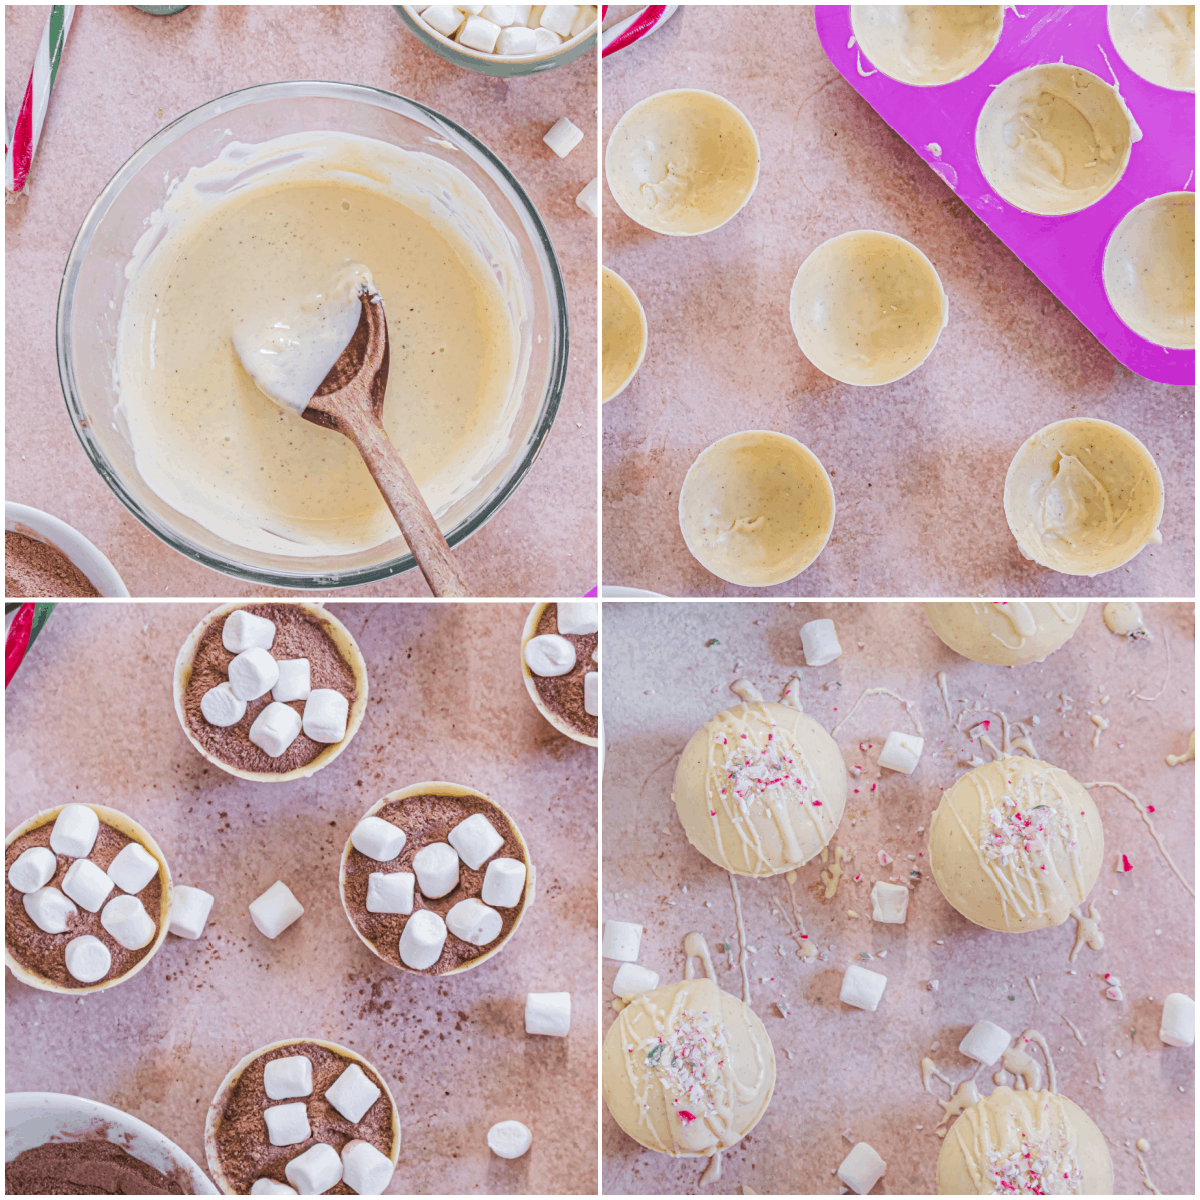 image collage showing the steps for making peppermint hot chocolate bombs